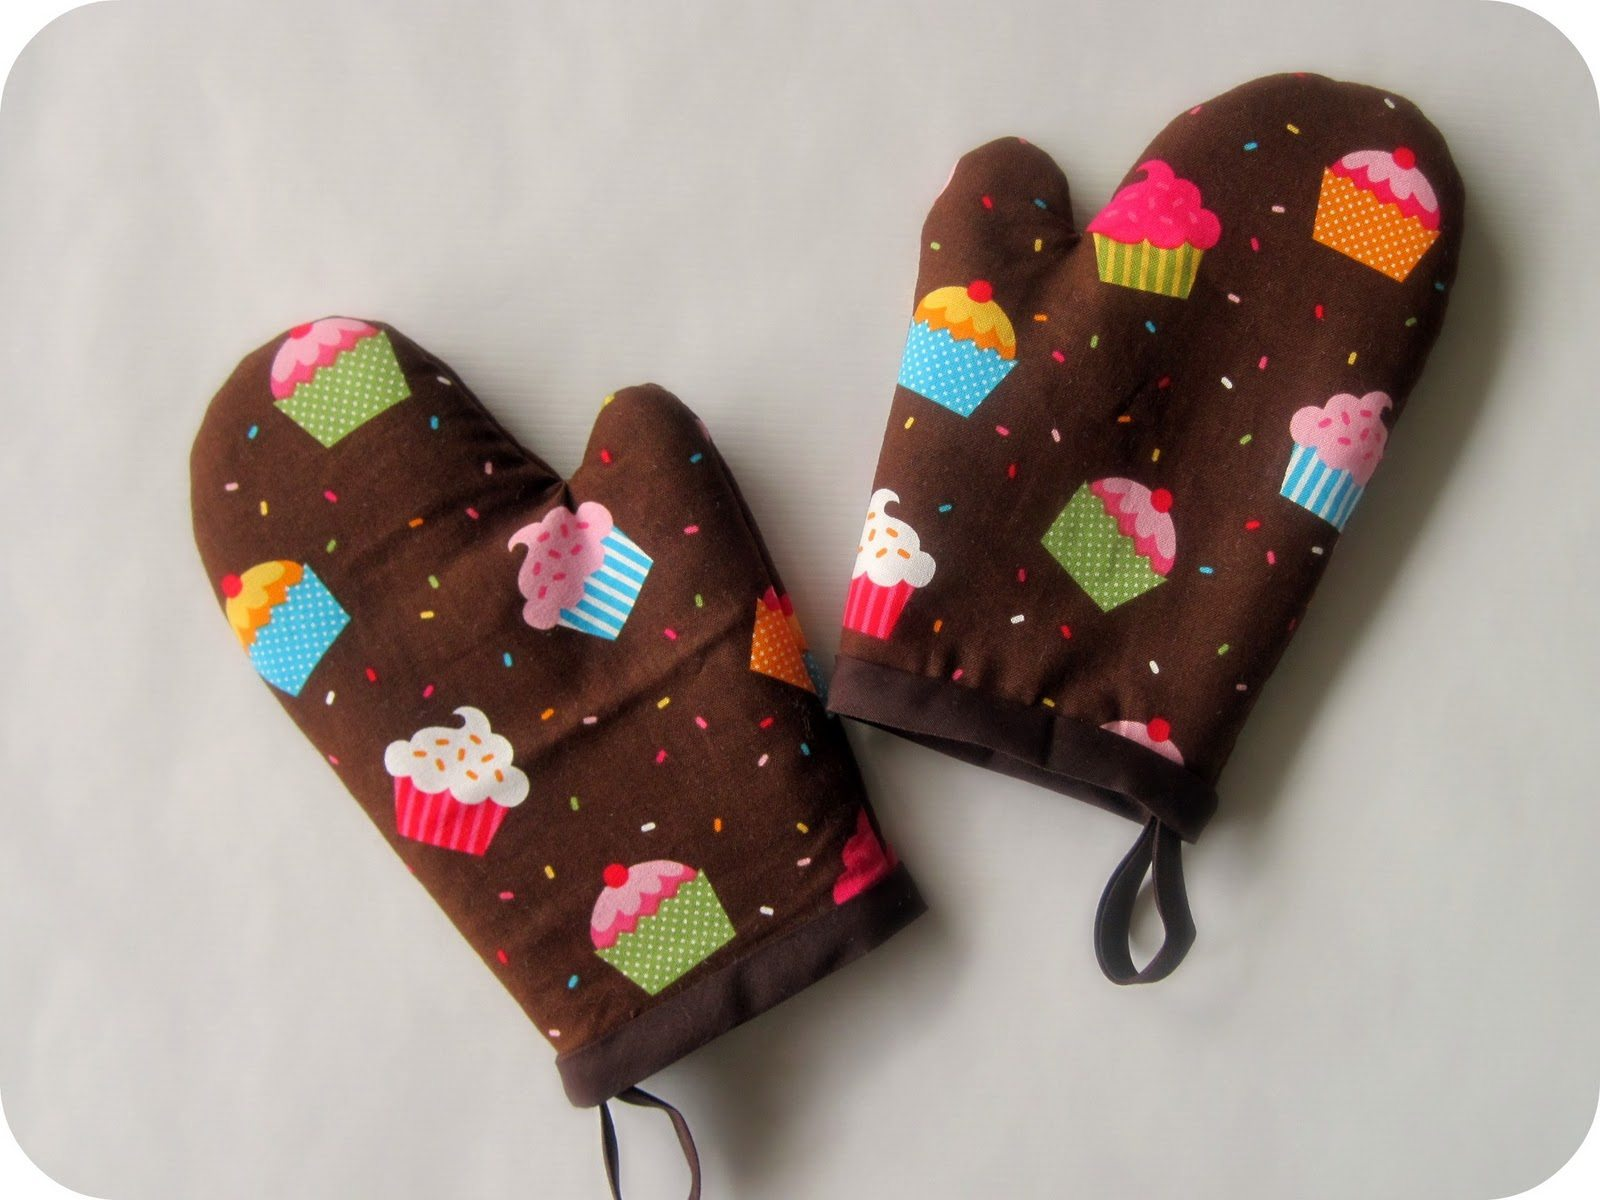 Hand made oven mittens